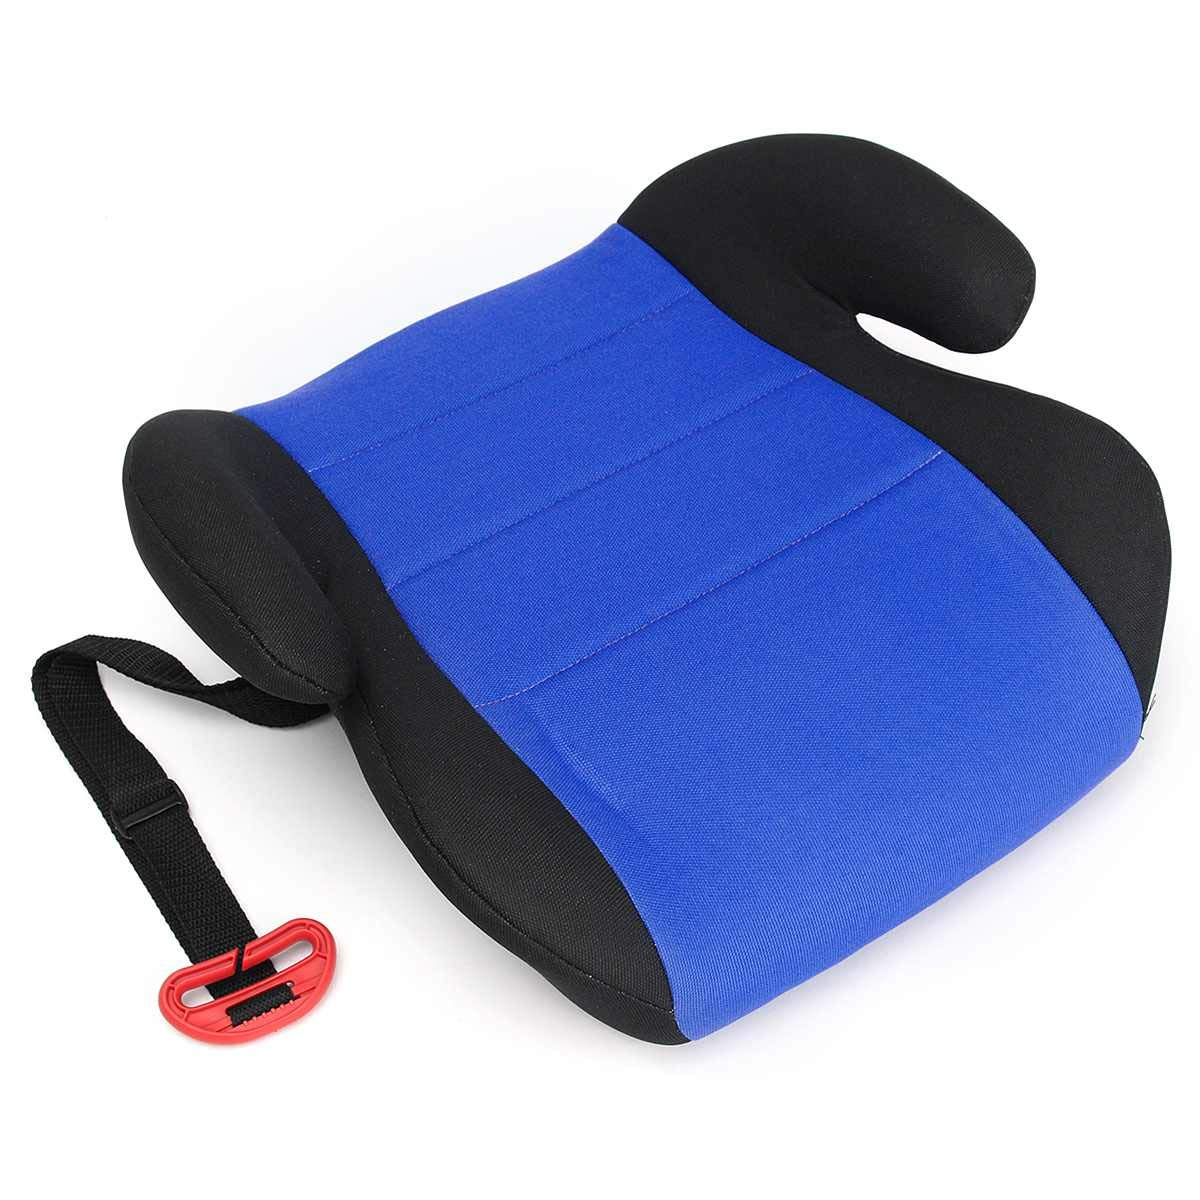 Car Booster Seat Chair Cushion Pad For Toddler Children Kids Baby Sturdy 3-12Y